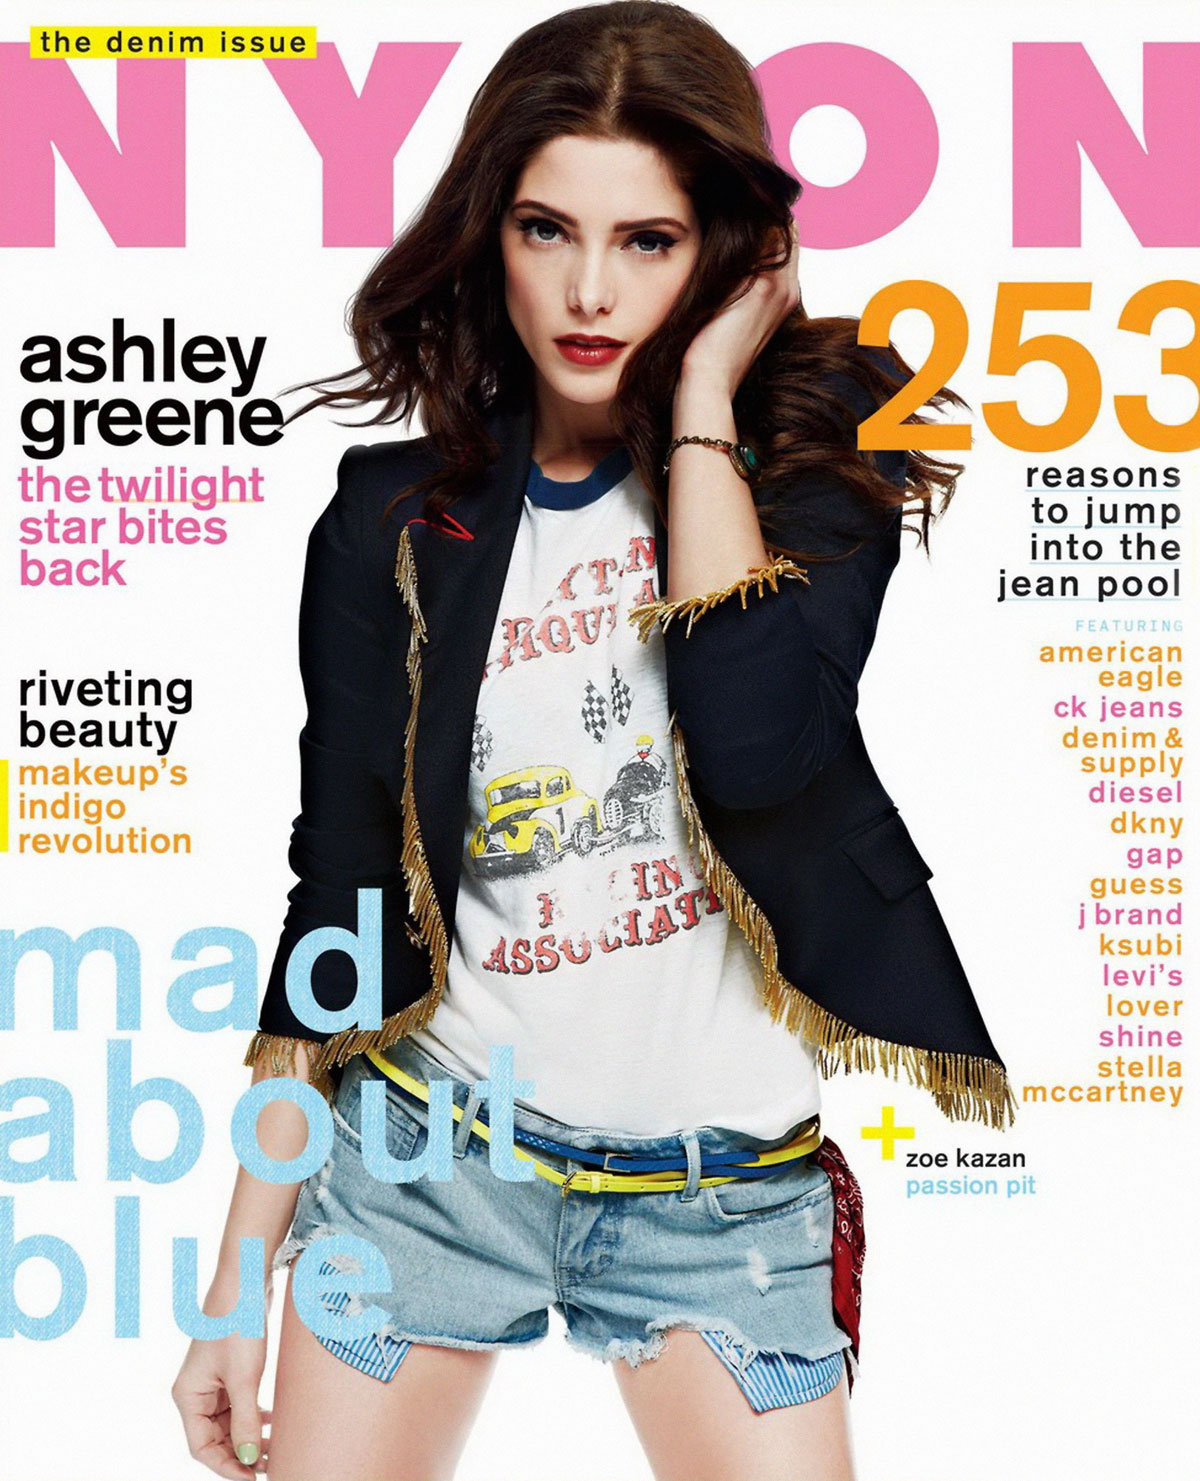 AfterSounds Next Top Model (C3) - Guys vs Girls (Hollywood Edition) - GANADORA Pag, 27 (IV) - Página 15 ASHLEY-GREENE-in-Nylon-Magazine-August-2012-Issue-2